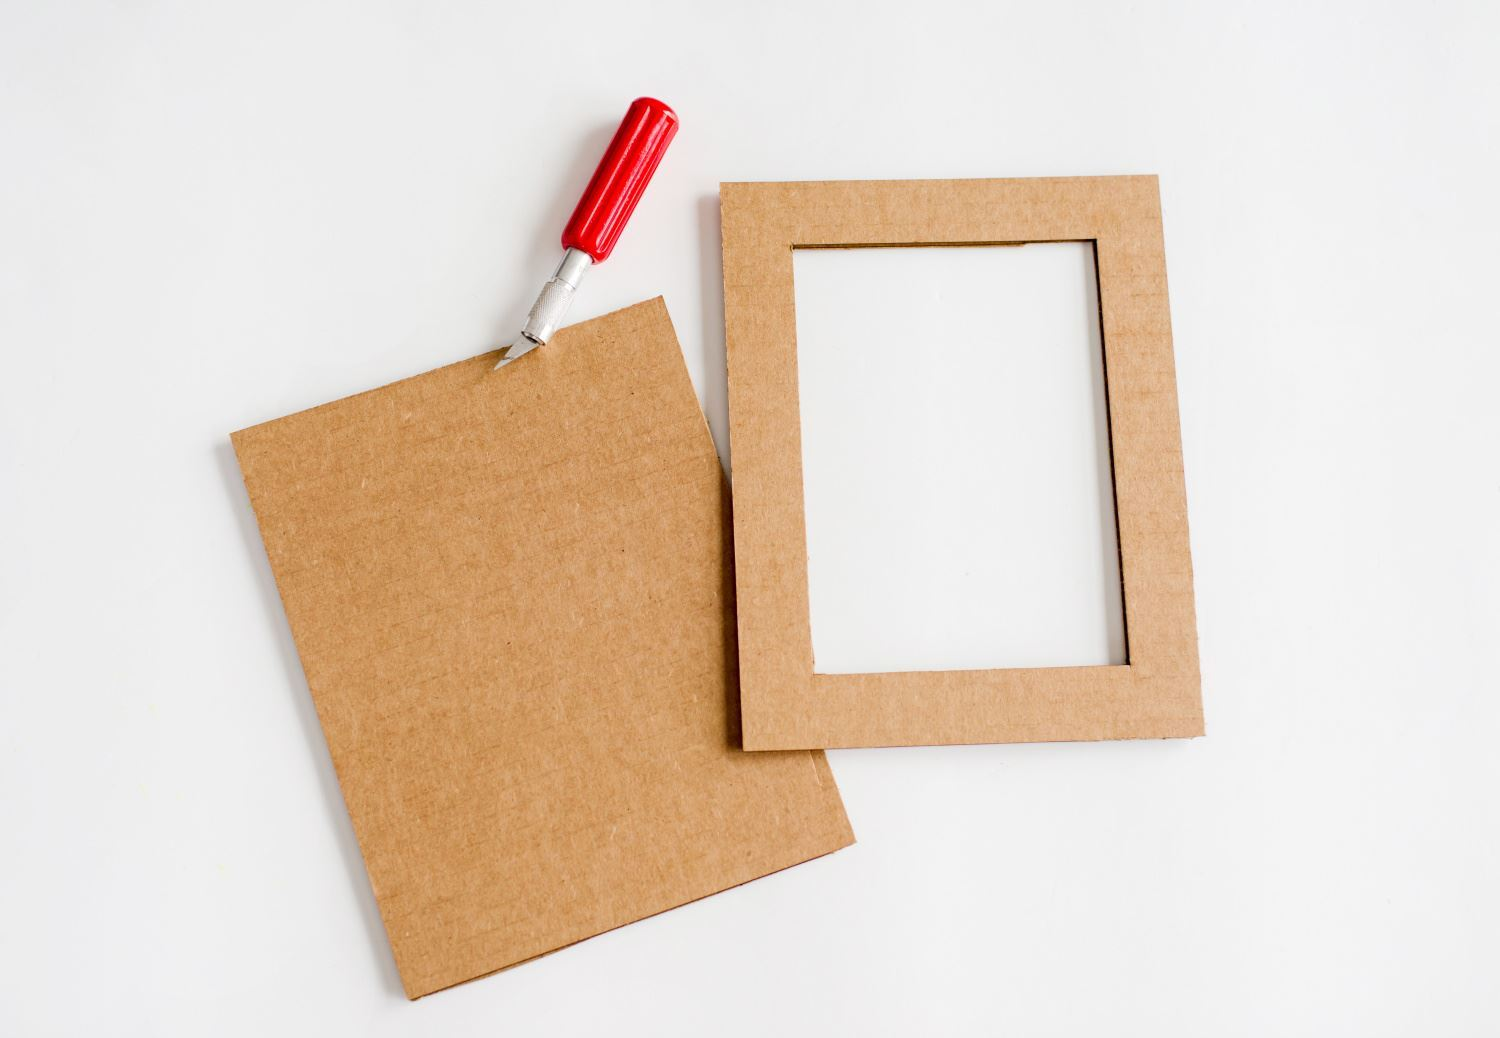 Cut frame pieces from cardboard